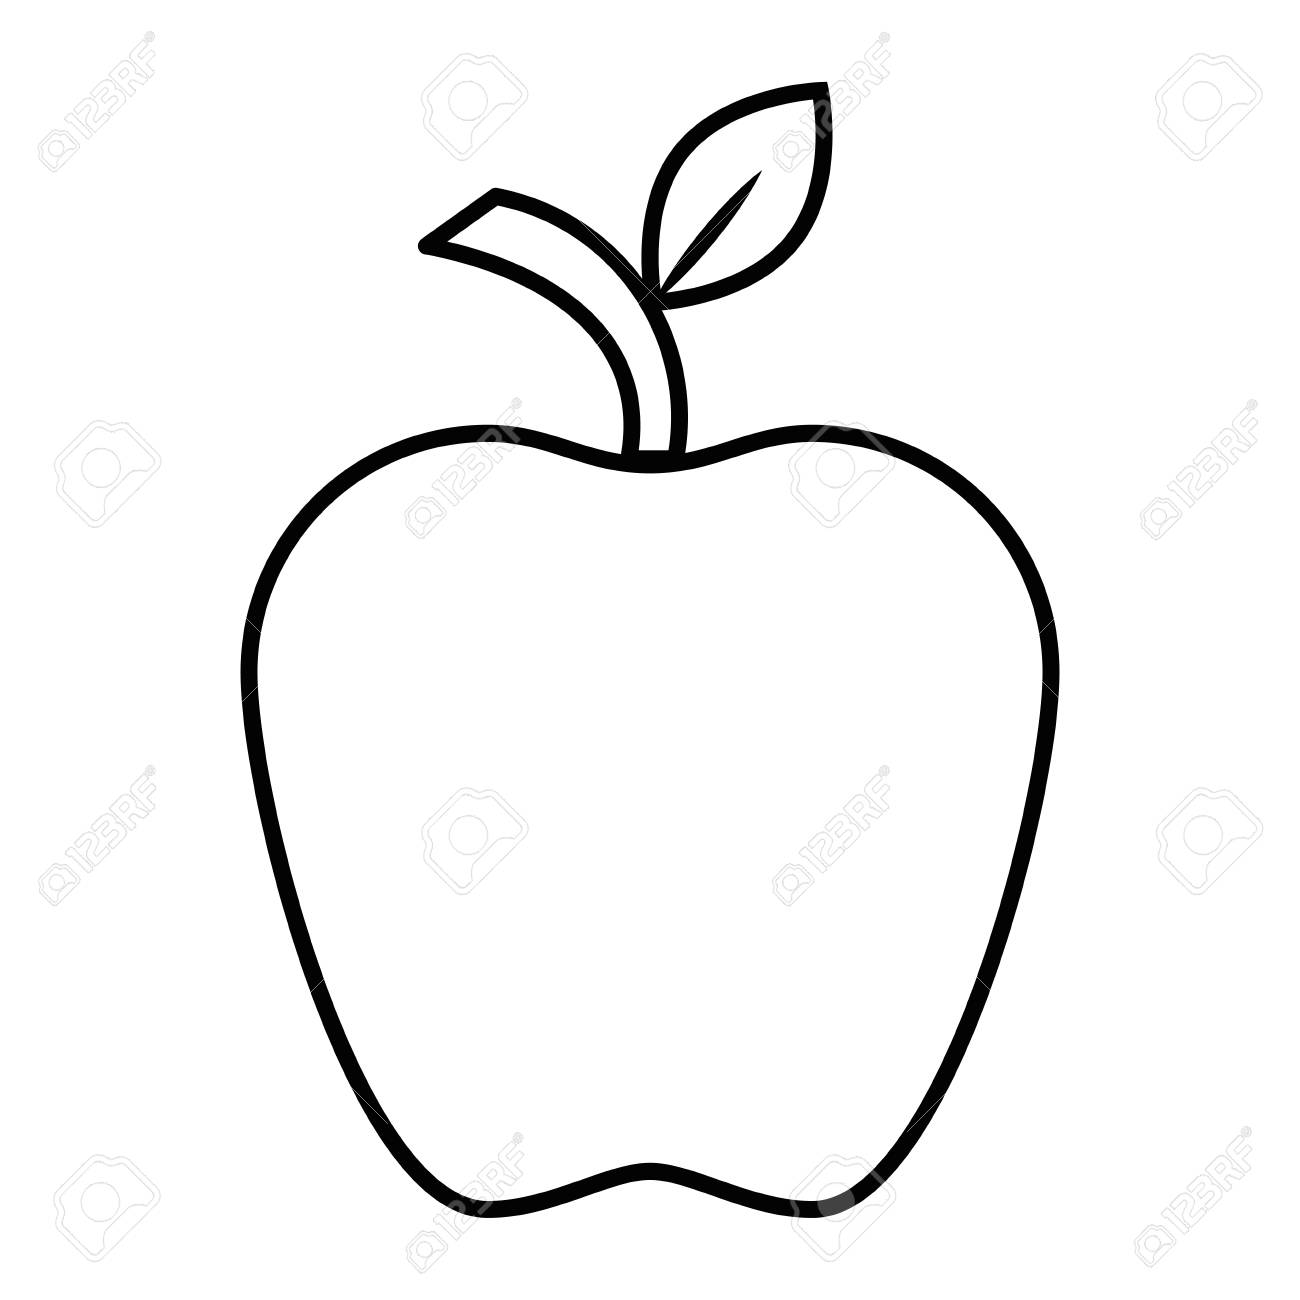 An apple fruit icon over white background vector illustration